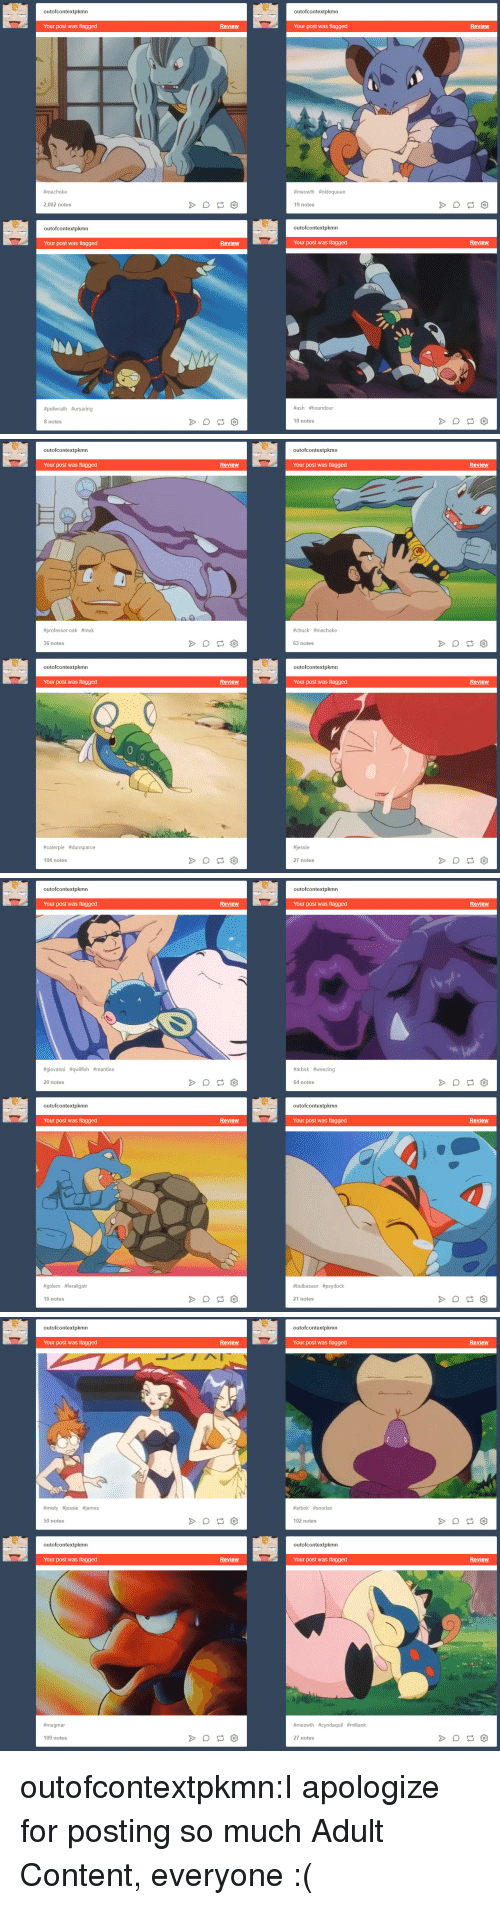 Ash, Bulbasaur, and Psyduck: outofcontextpkmn  outofcontextpkmn  Your post was flagged  Review  Your post was flagged  Review  #ma choke  #meowth #nidoqueen  2,002 notes  19 notes  outofcontextpkmn  outofcontextpkmn  Your post was flagged  Review  Your post was flagged  Review  #poliwrath #ursaring  #ash #houndour  8 notes  18 notes   outofcontextpkmn  outofcontextpkmn  Review  Review  Your post was flagged  Your post was flagged  #chuck #machoke  #professor oak #muk  63 notes  36 notes  outofcontextpkmn  outofcontextpkmn  Review  Review  Your post was flagged  Your post was flagged  essie  #caterpie #dunsparce  27 notes  104 notes   outofcontextpkmn  outofcontextpkmn  Your post was flagged  Review  Your post was flagged  Review  #giovanni #qwifish #mantine  #arbok #weezing  20 notes  64 notes  outofcontextpkmn  outofcontextpkmn  Your post was flagged  Review  Your post was flagged  Review  #golem #feraligatr  #bulbasaur #psyduck  16 notes  21 notes   outofcontextpkmn  outofcontextpkmn  Your post was flagged  Review  Your post was flagged  Review  #místy #jessie ames  #arbok #snorlax  50 notes  102 notes  outofcontextpkmn  outofcontextpkmn  Your post was flagged  Review  Your post was flagged  Review  #magmar  #meowth #cyndaquil #miltank  109 notes  27 notes outofcontextpkmn:I apologize for posting so much Adult Content, everyone :(